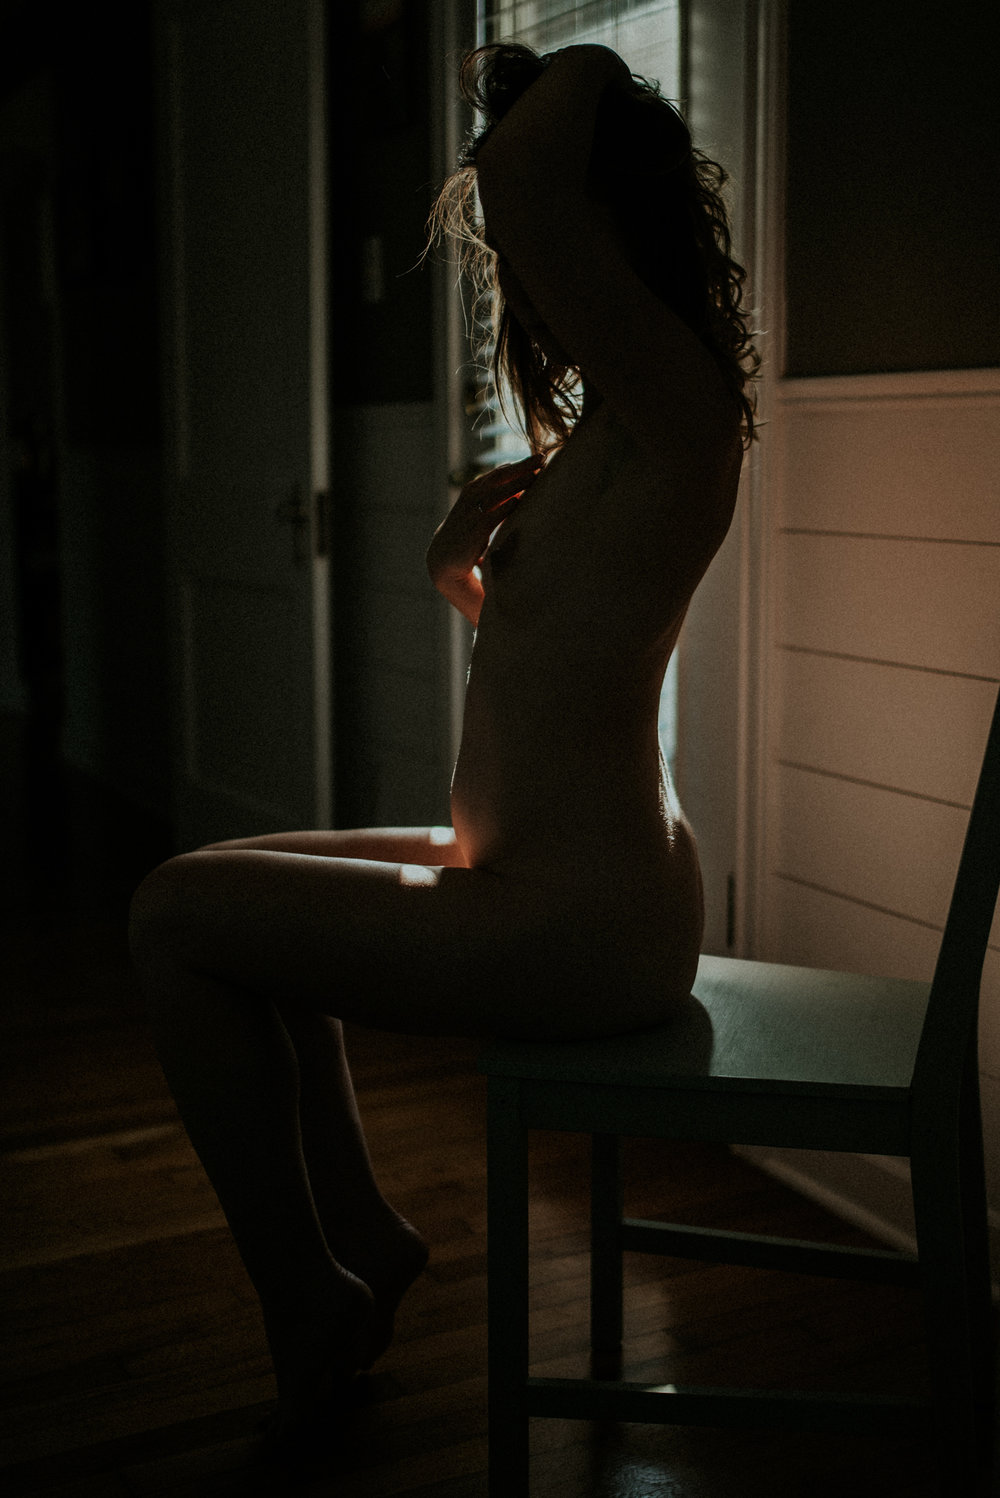 Babe sitting in shadows, Intimacy + Shadows Boudoir Session | Rooney June Productions